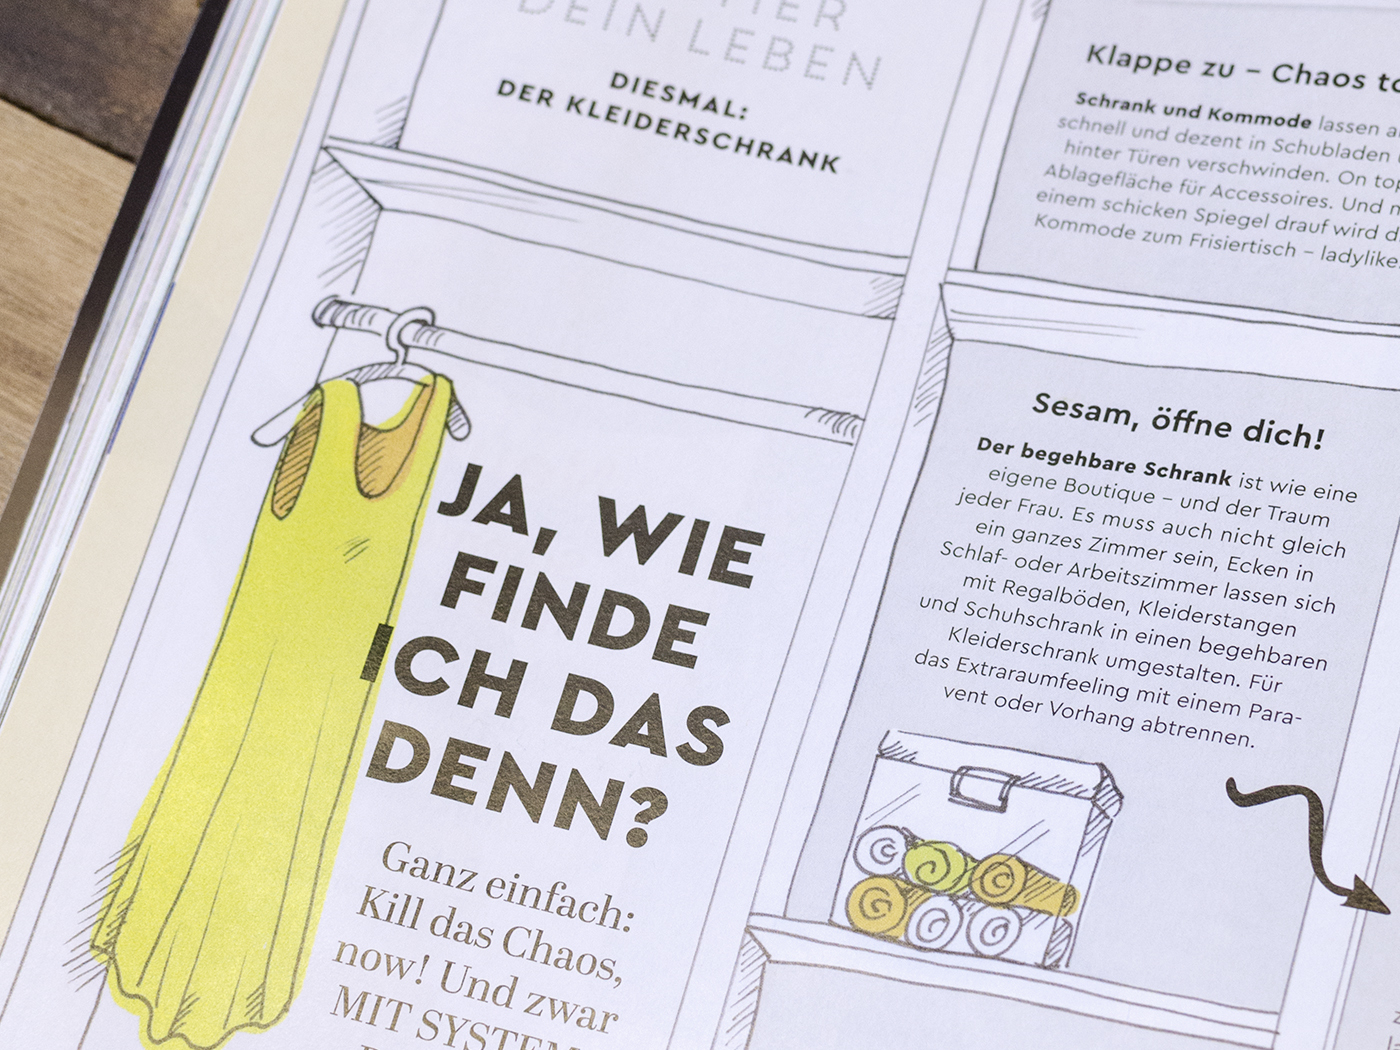 Type Mates In Use Guido Maria Kretschmer Fashion Magazine Gruner Jahr 12 Cera Pro Cera Compact